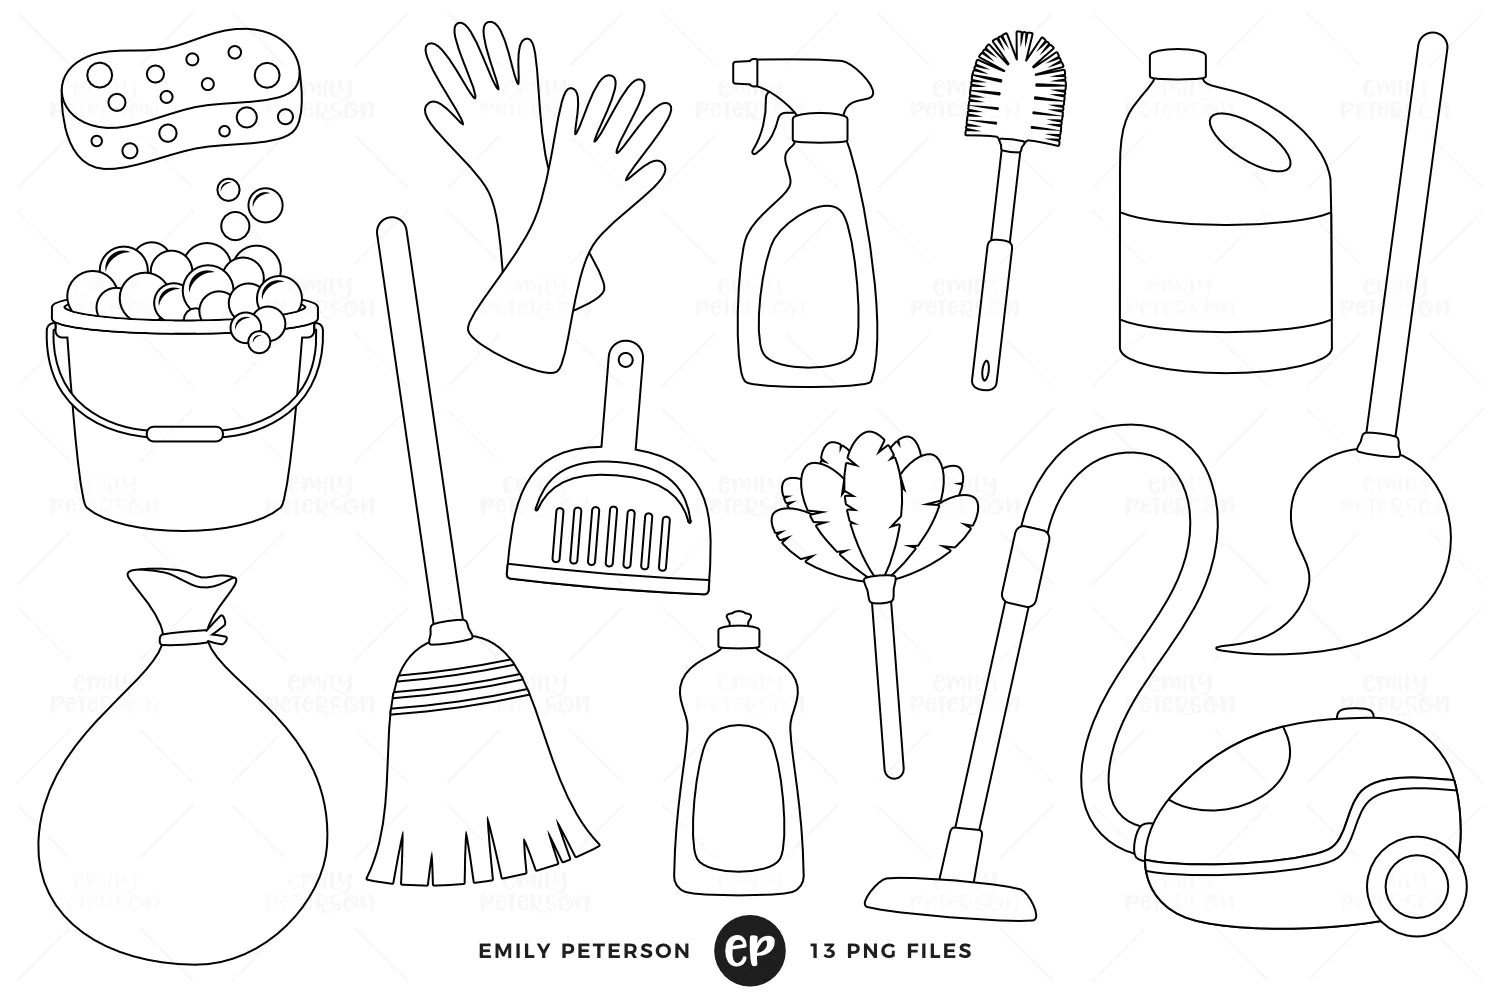 Spring Cleaning Digital Stamps Chores Line Art Housework